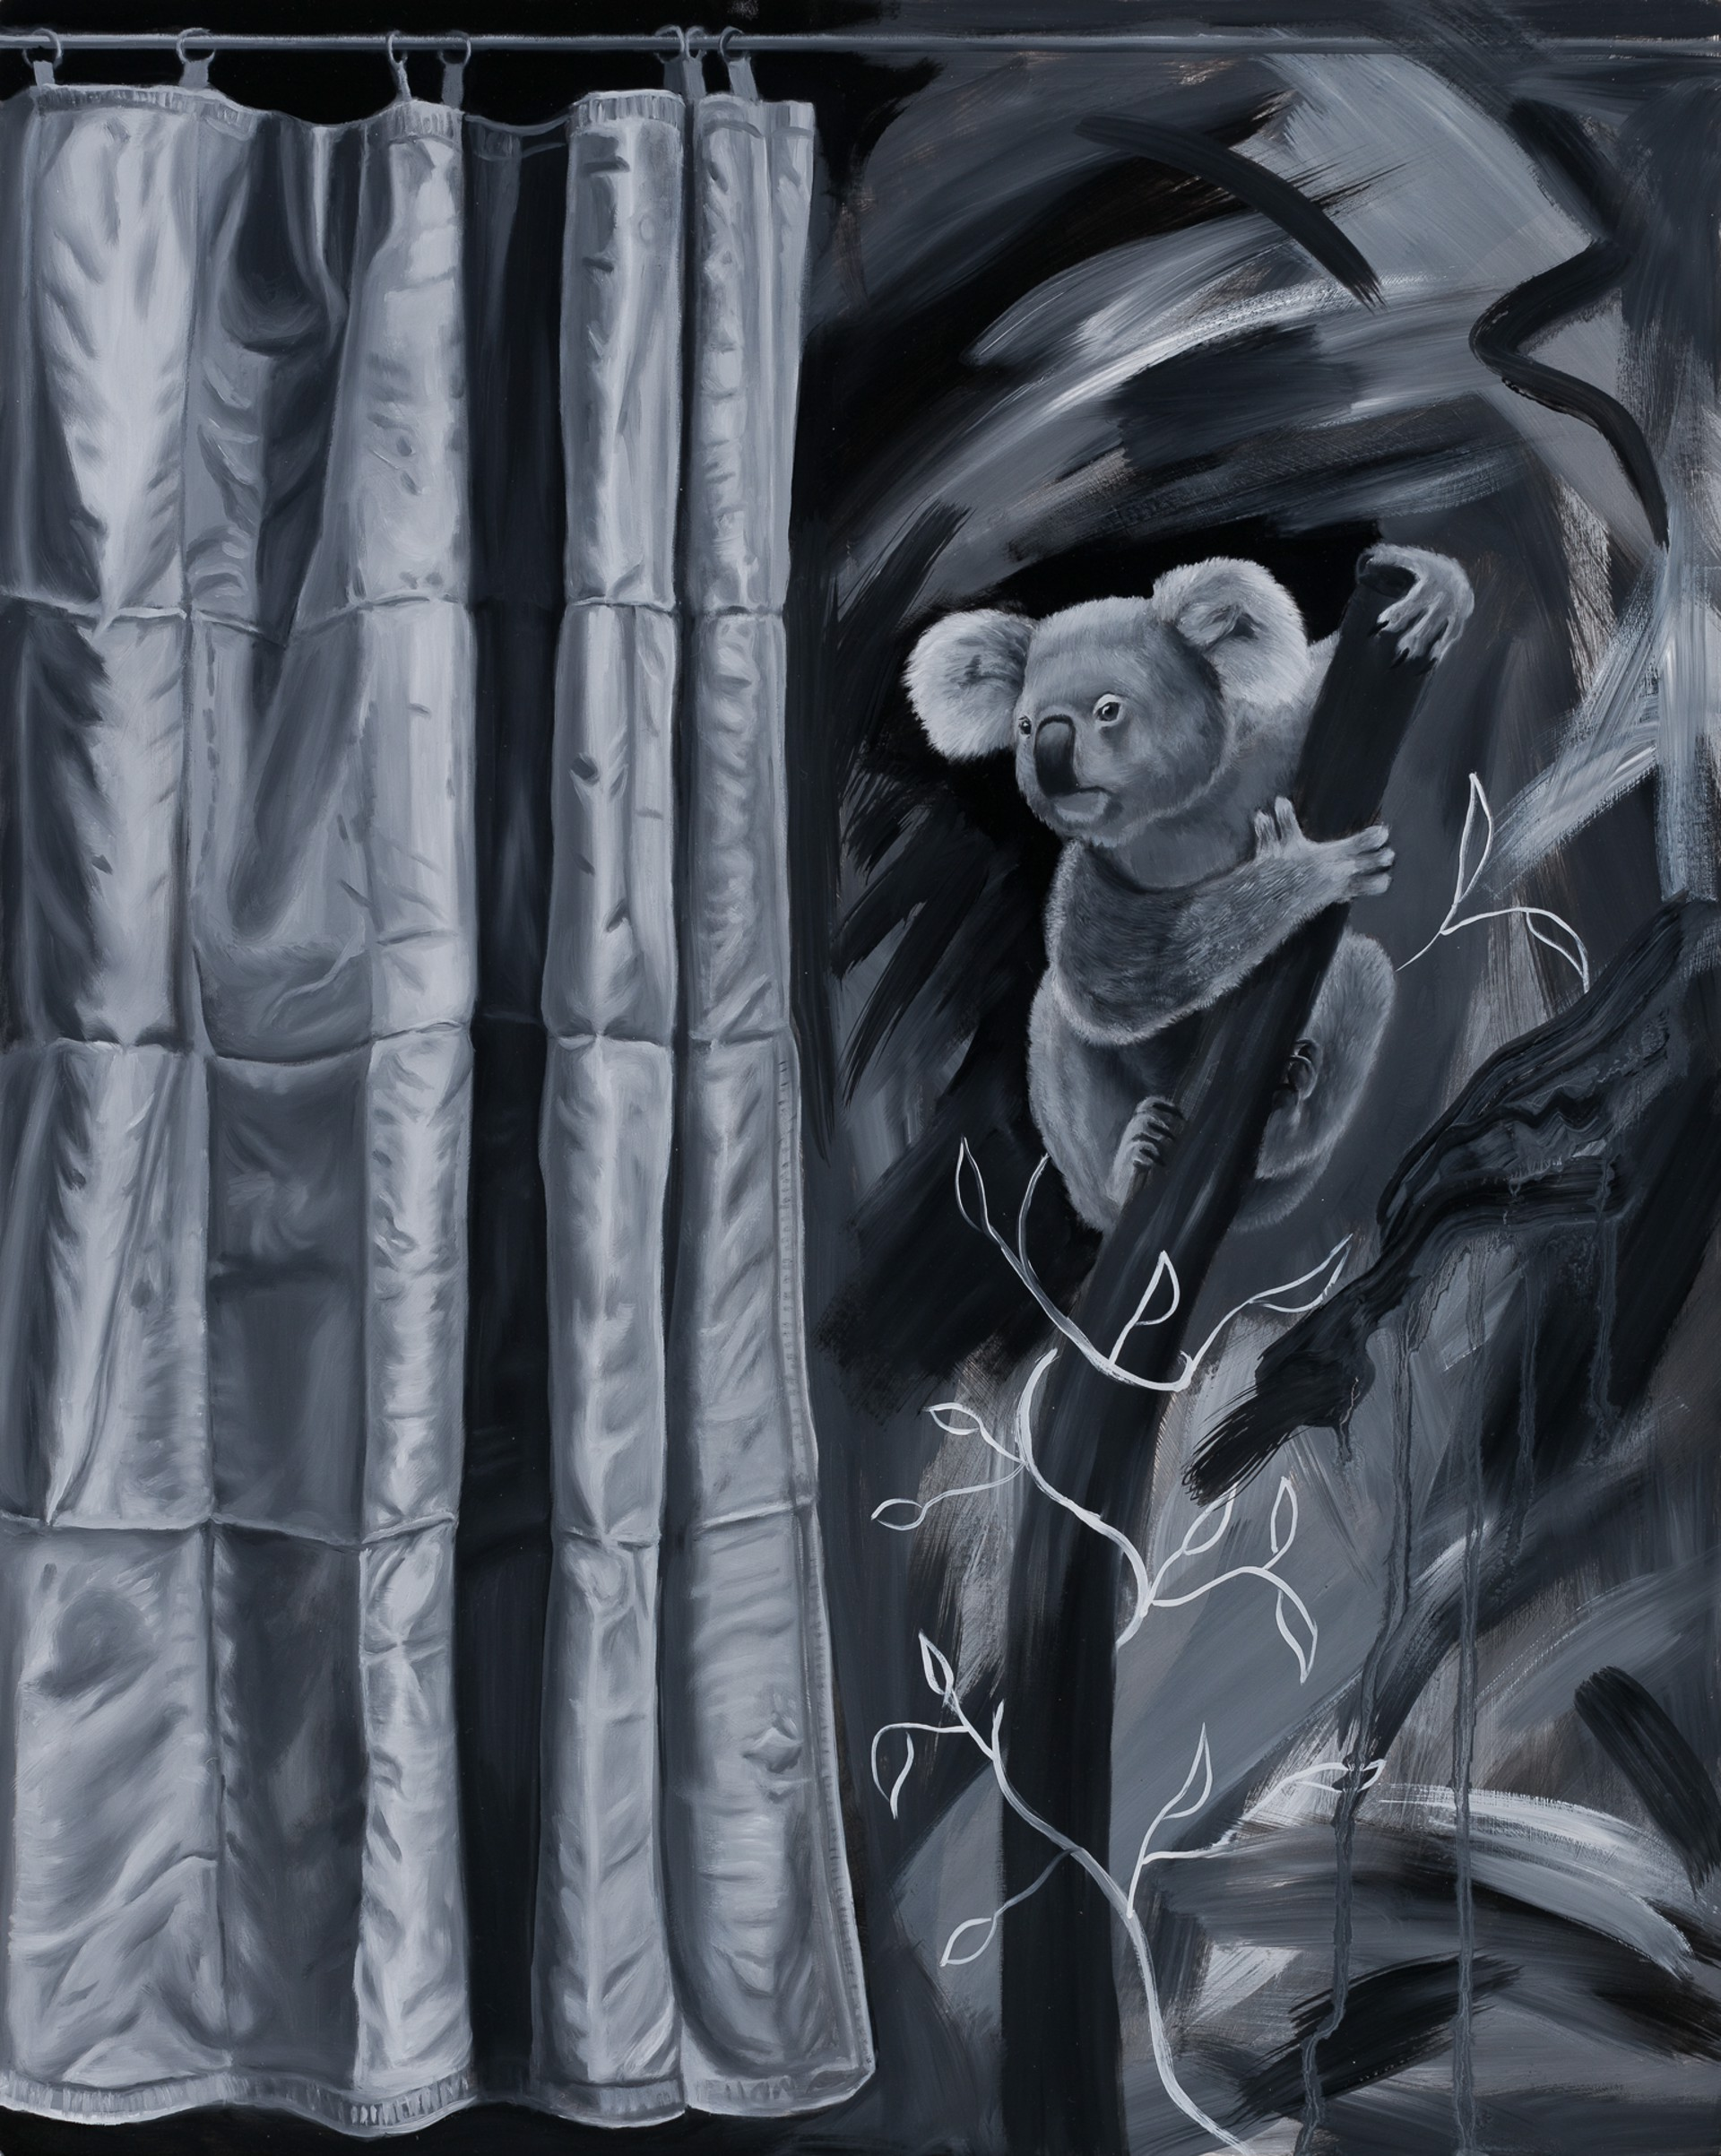 Behind the Curtain by Robin Hextrum